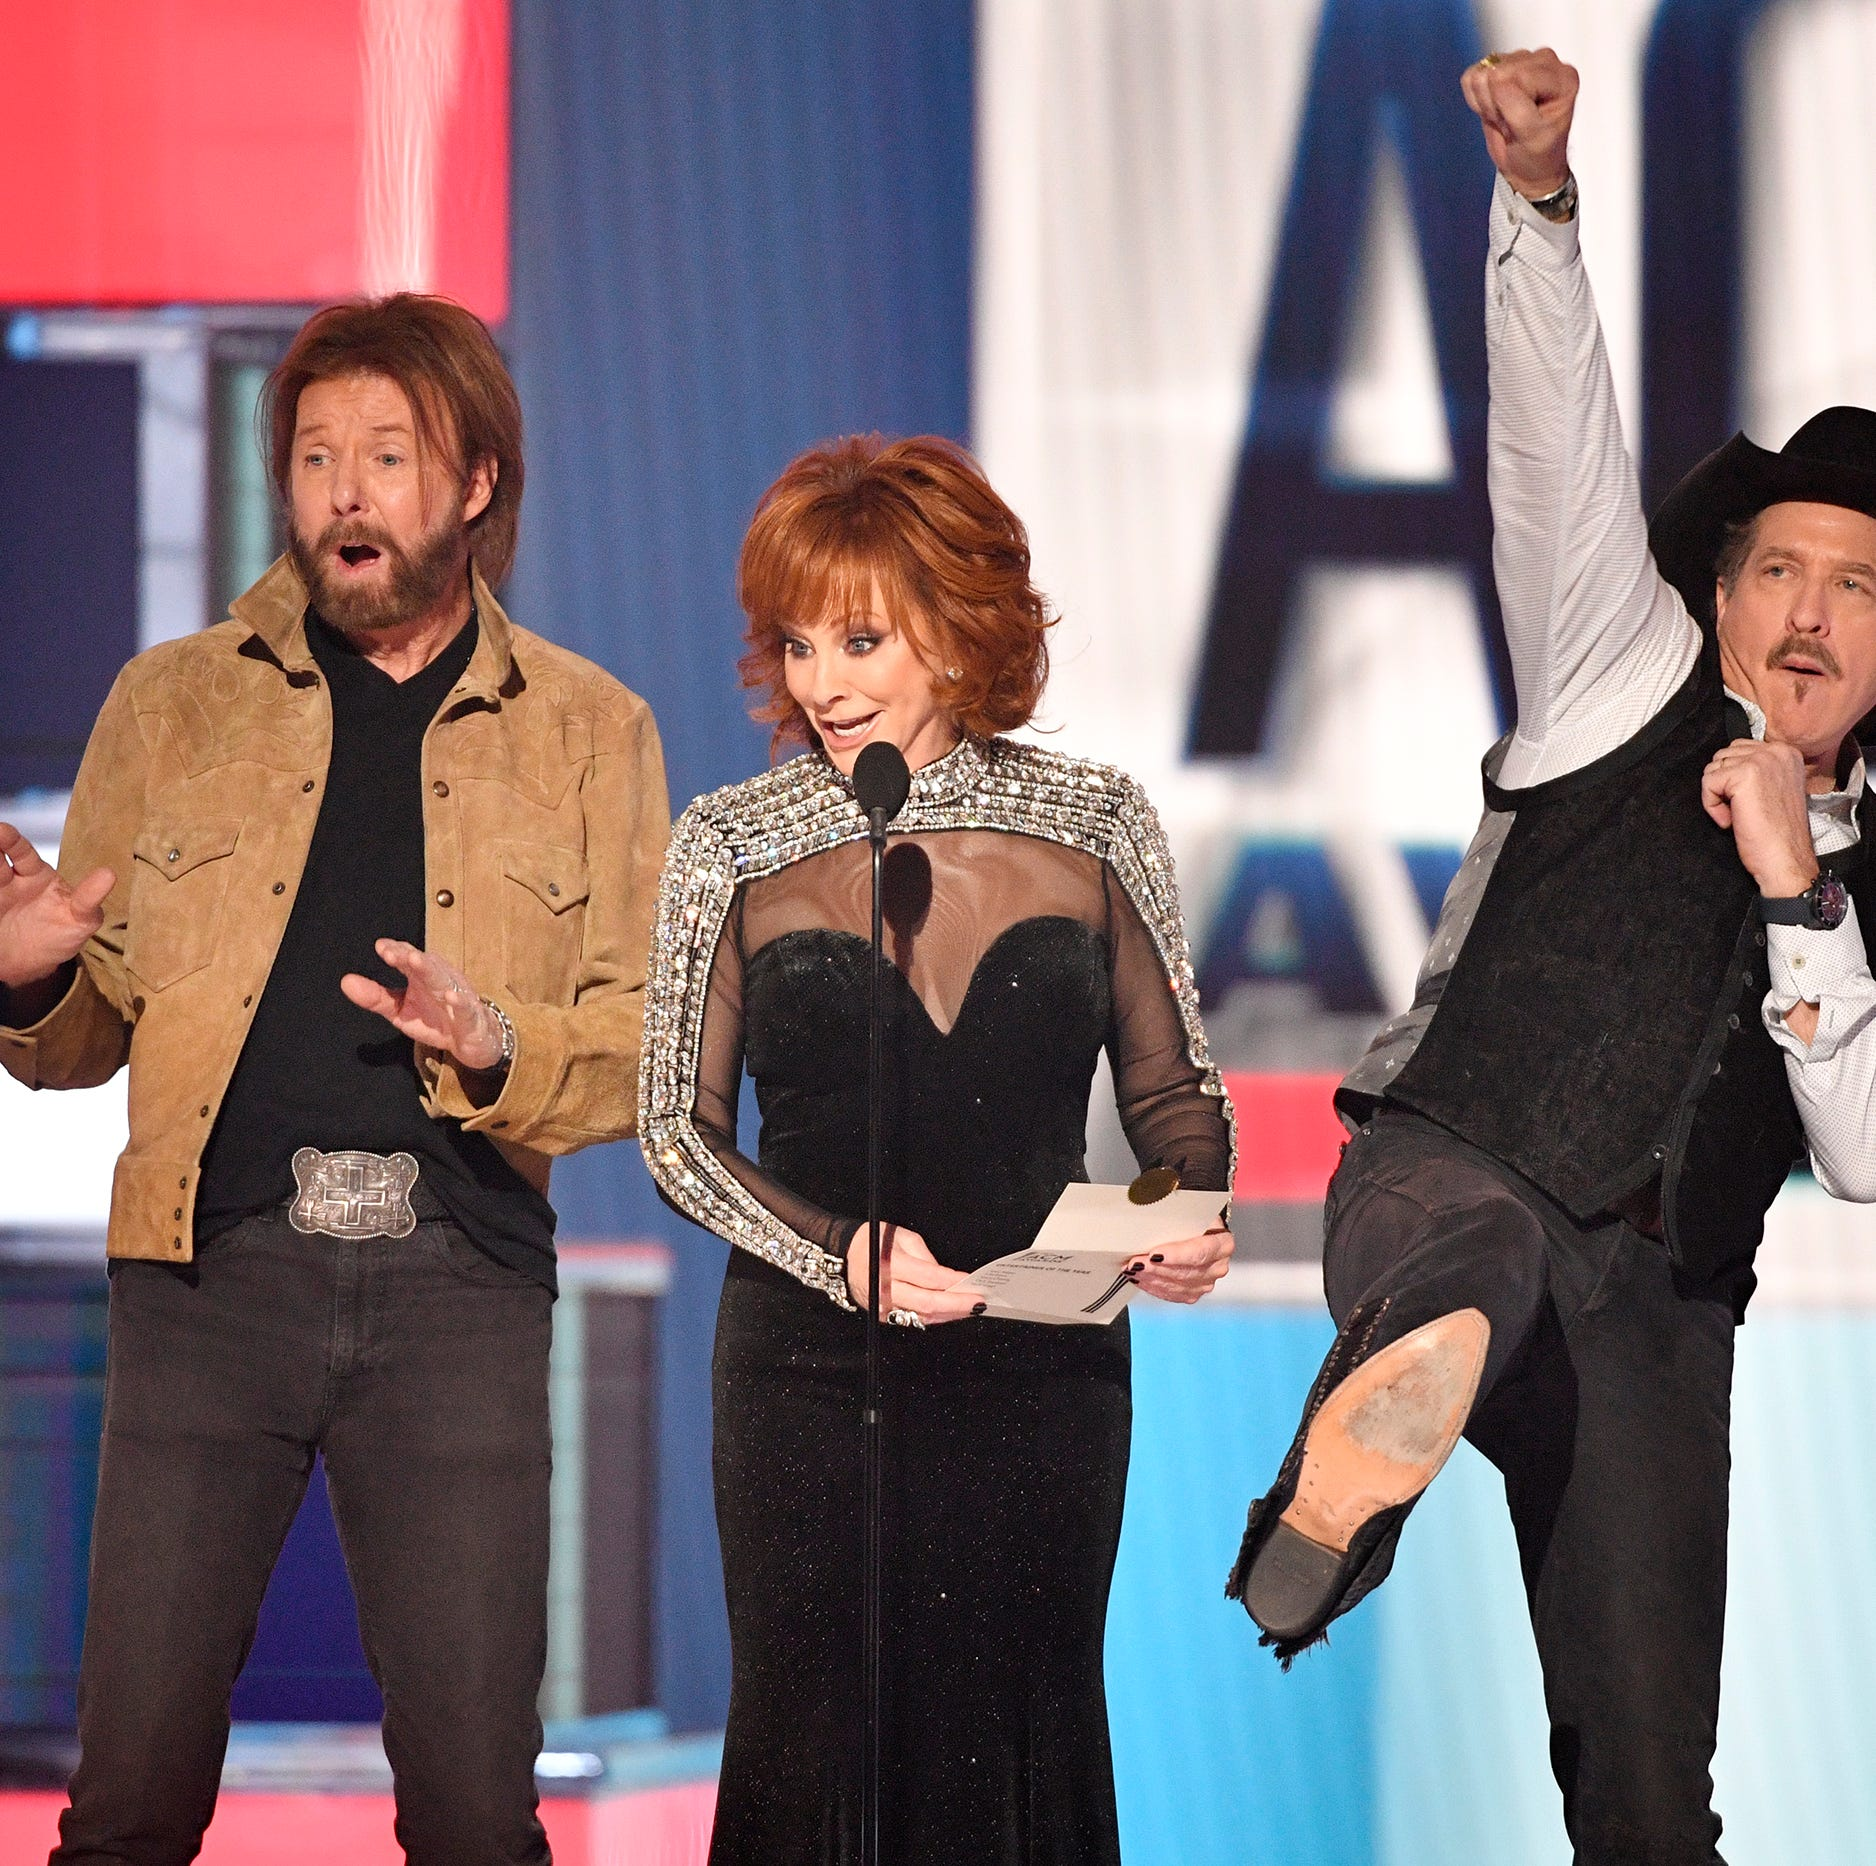 Brooks & Dunn 'slow-danced' 'REBOOT,' but reclaimed pinnacle with today's country stars